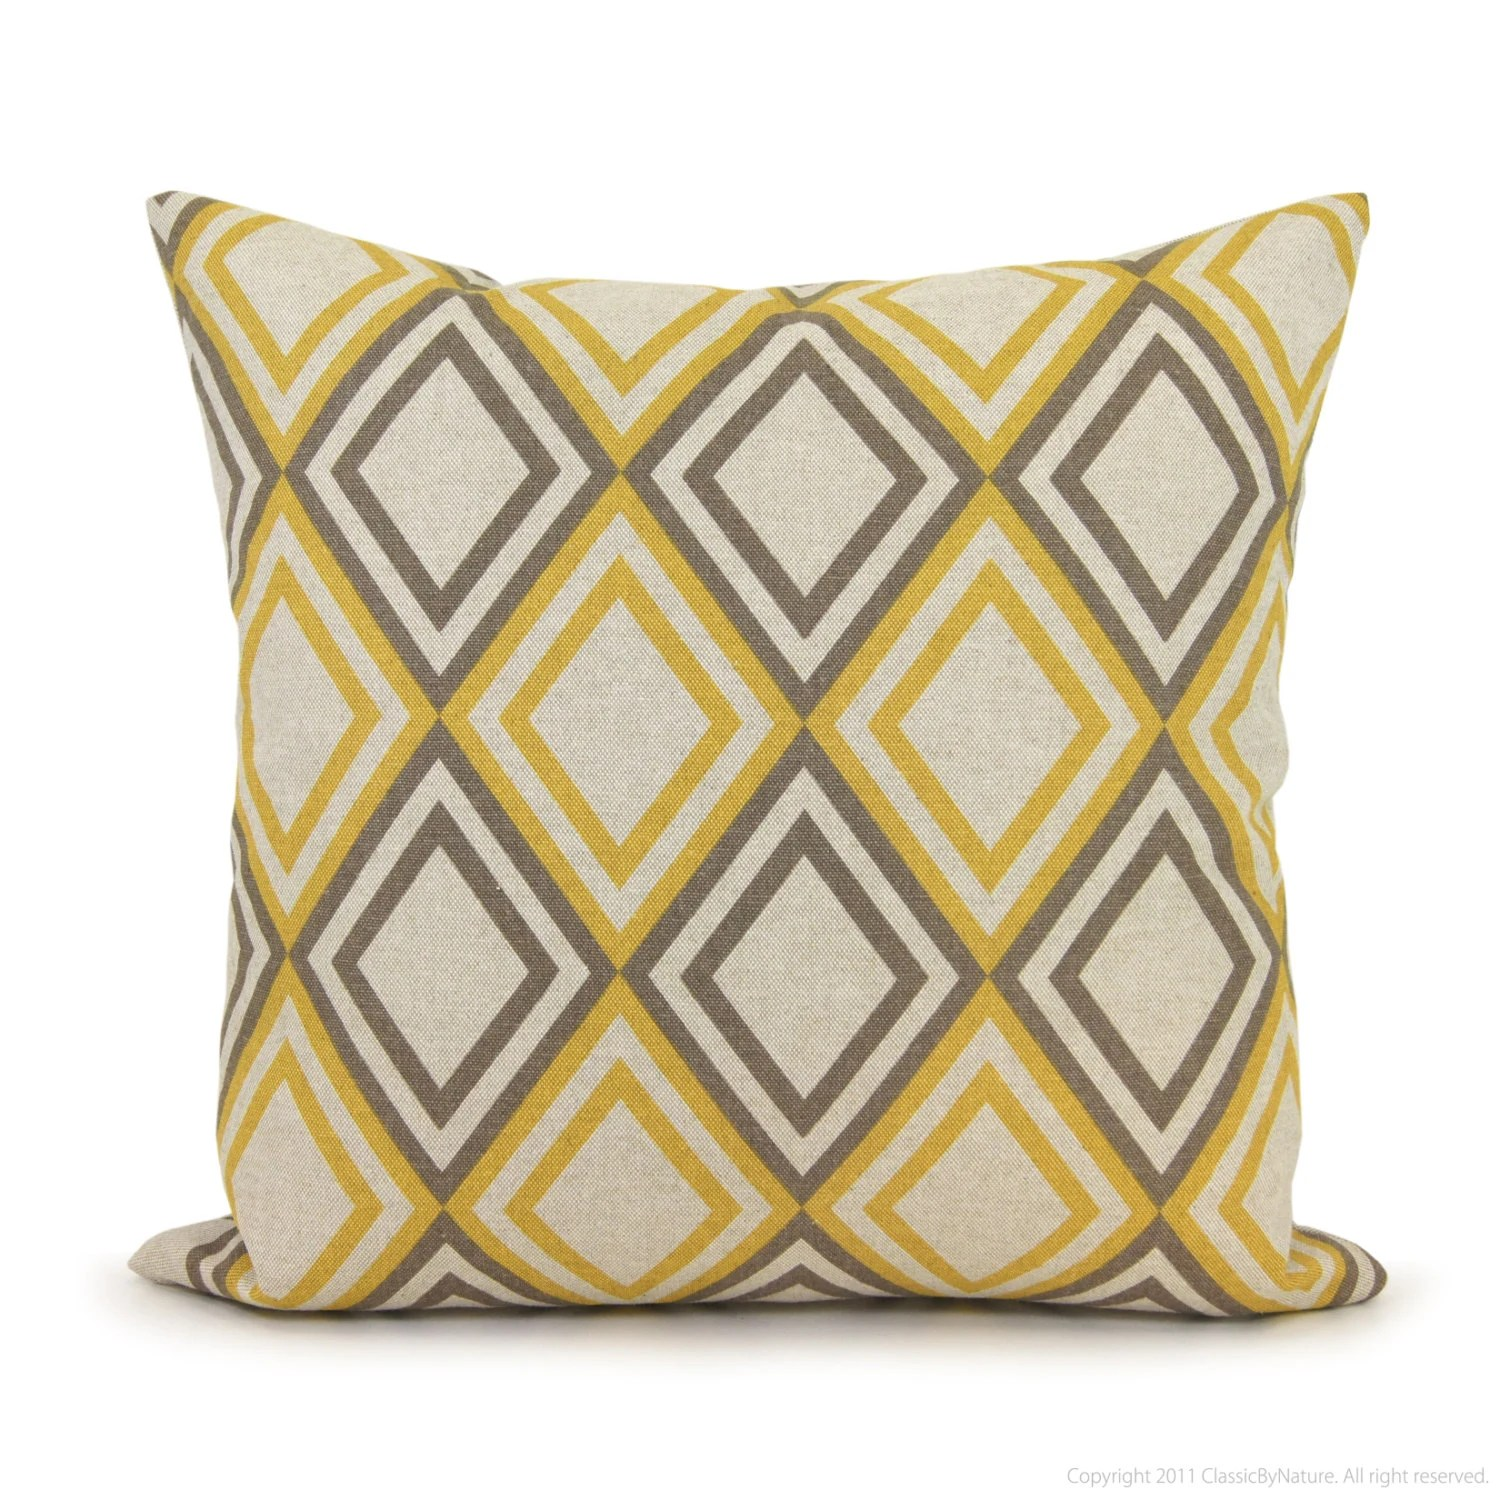 Geometric pillow cover ? 18?18 pillow cover ? Gray and yellow decorative pillow cover ? Modern ...